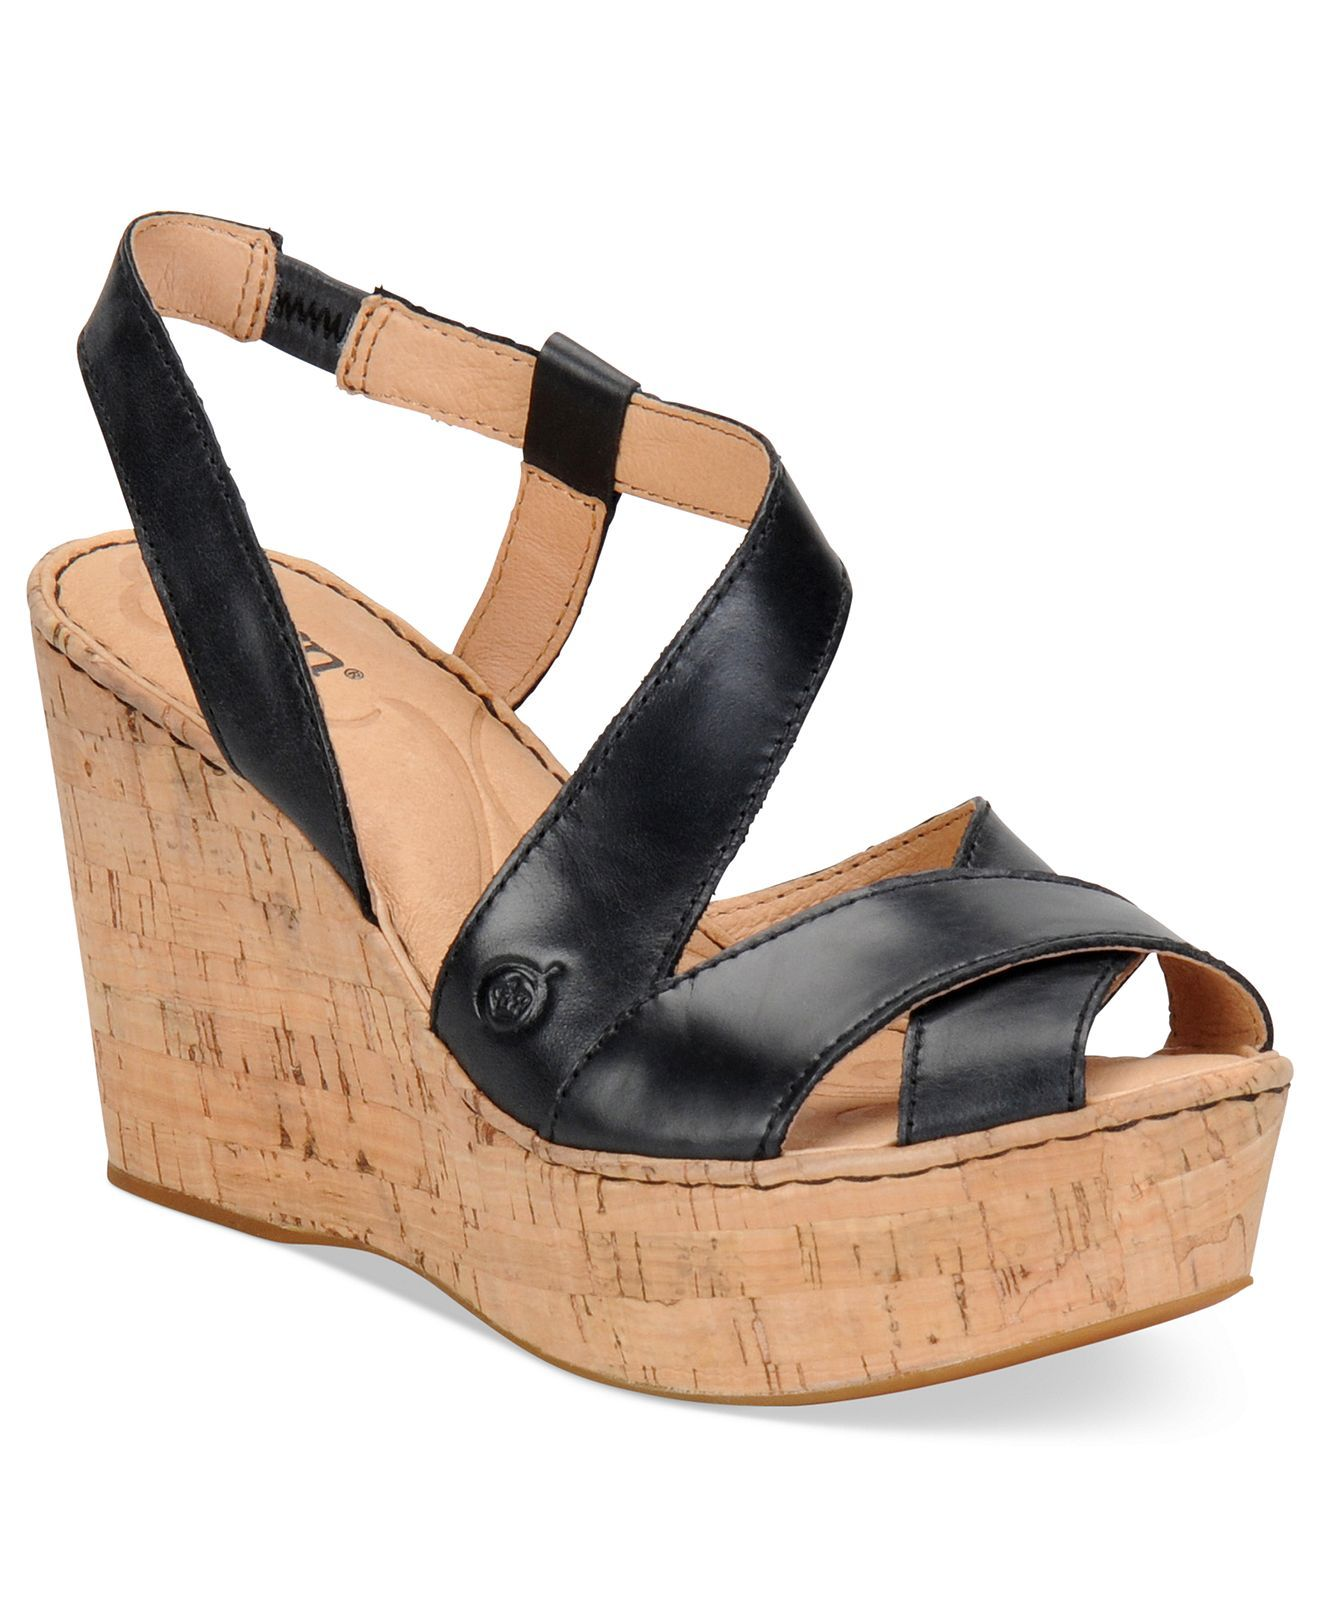 pin are comforter heels strappy the comfortable easily these ever we wedges ve toms most worn by